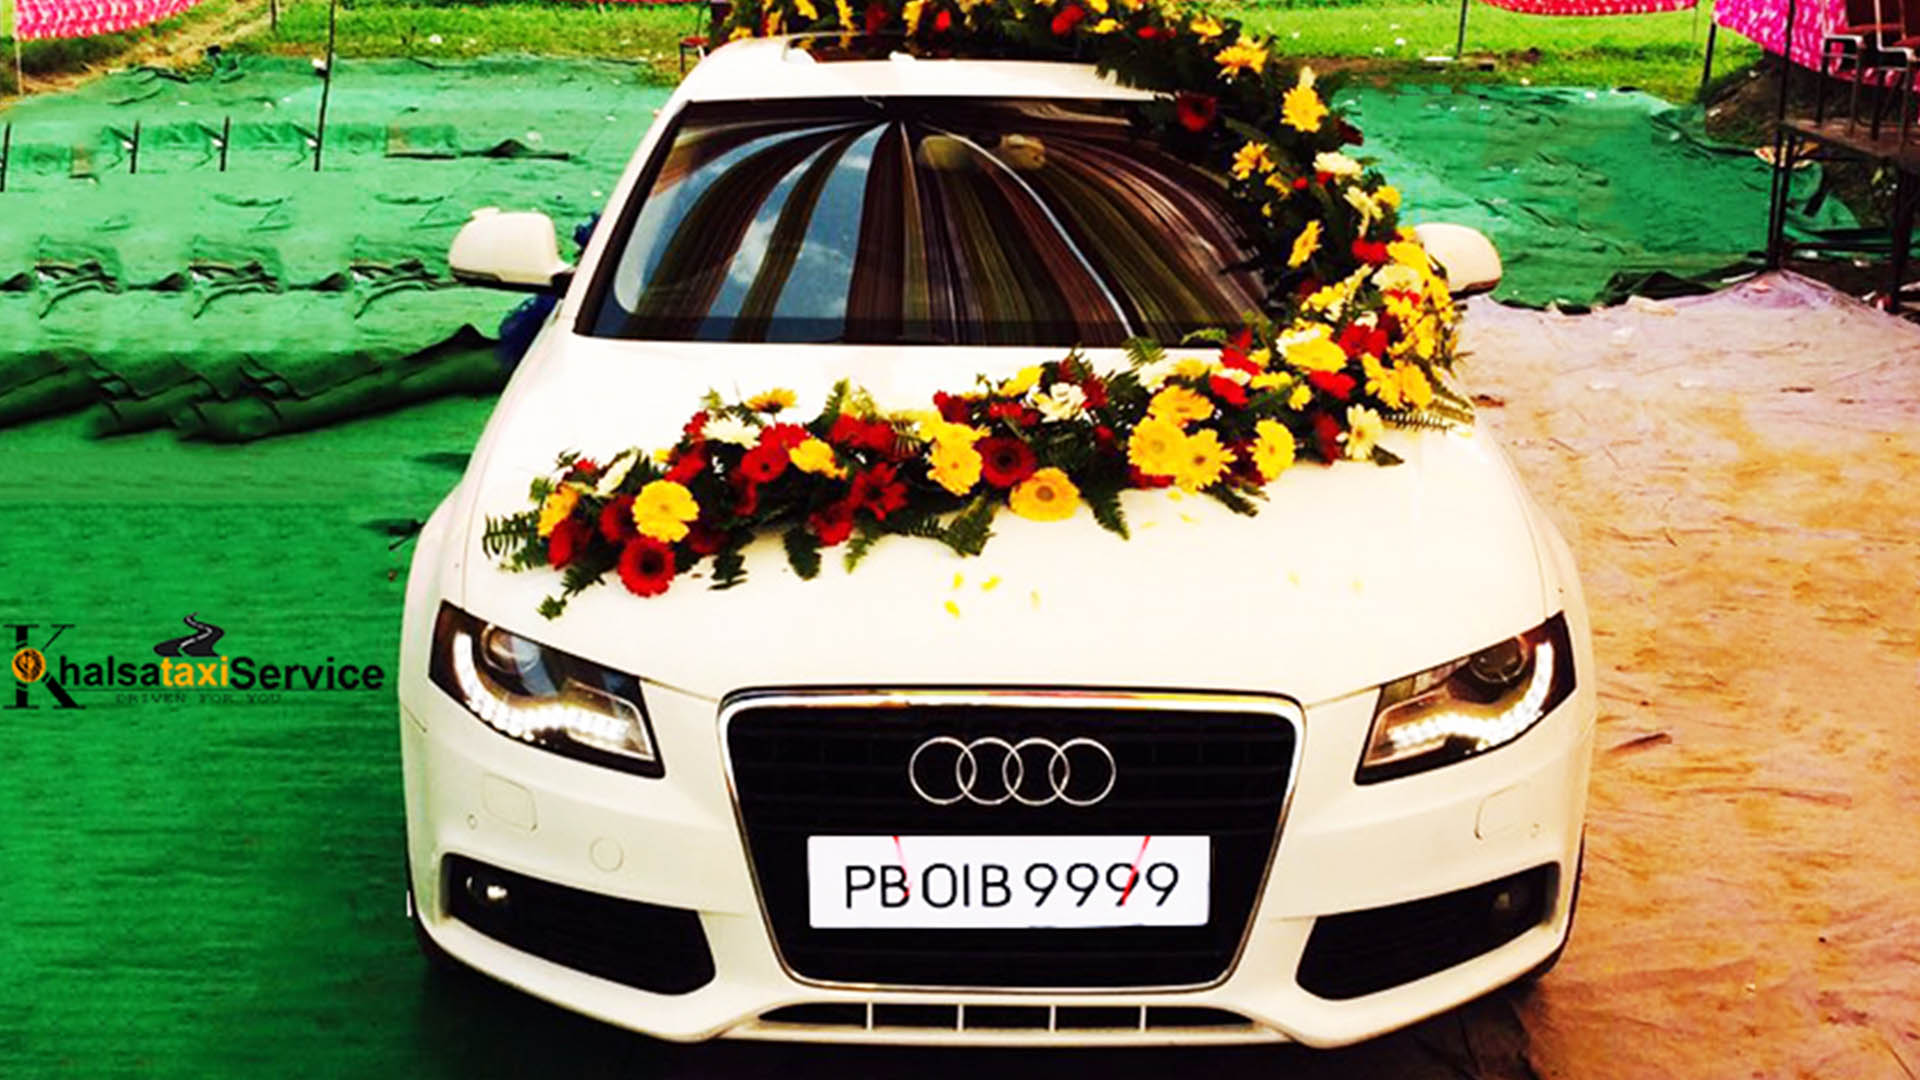 Luxury car rental in Chandigarh, wedding car on rent in Chandigarh wedding car hire price list | Wedding transportation tariffs in Chandigarh